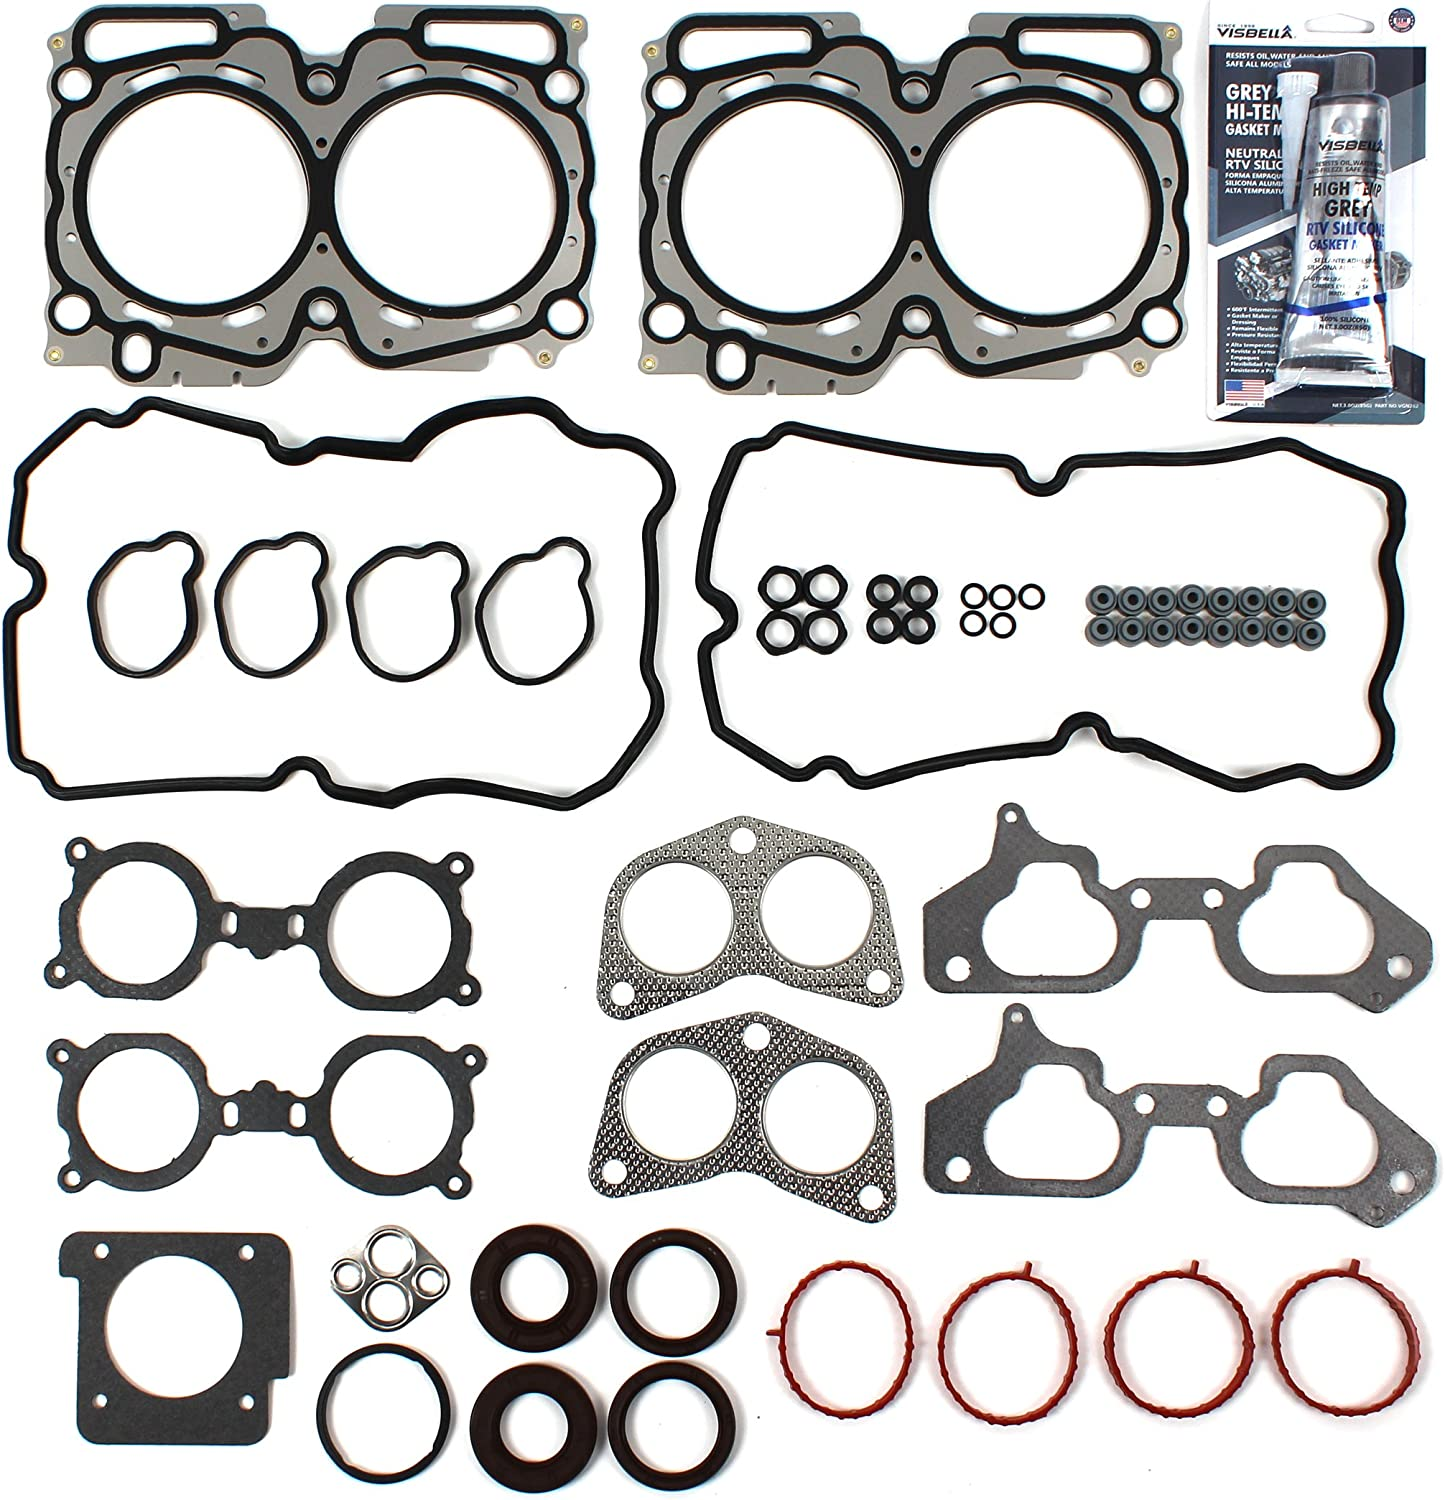 NEW EH7226 MLS Cylinder Head Gasket Set for 04-06 Subaru Baja Forester Legacy Outback 2.5L DOHC TURBO EJ255